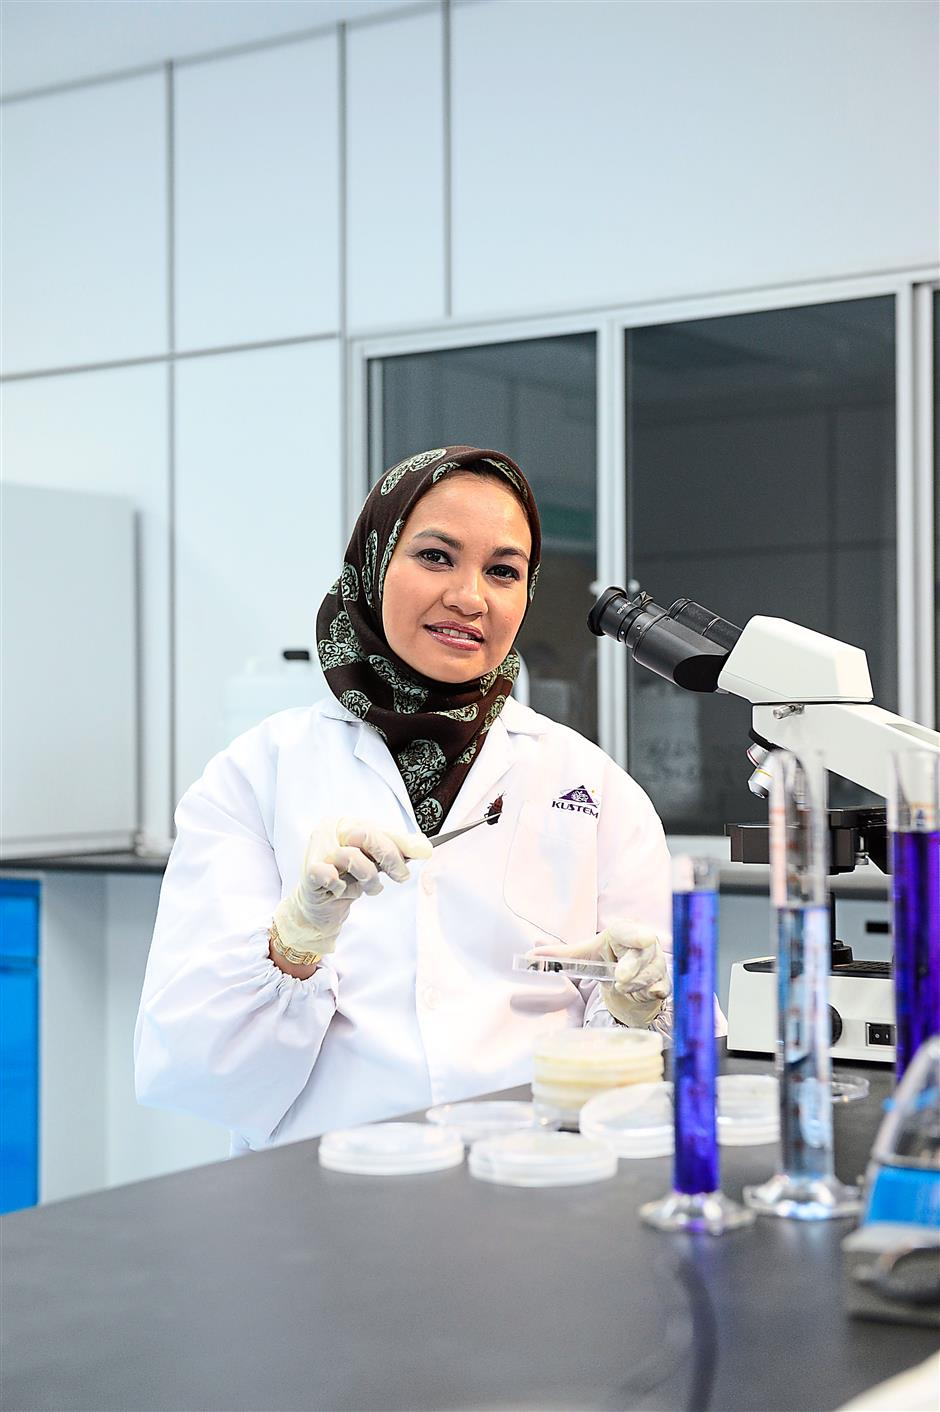 Search & destroy: Dr Wahizatul is determined to find a non-toxic method to overcome the problem of red palm weevils, which attacks oil palm trees.